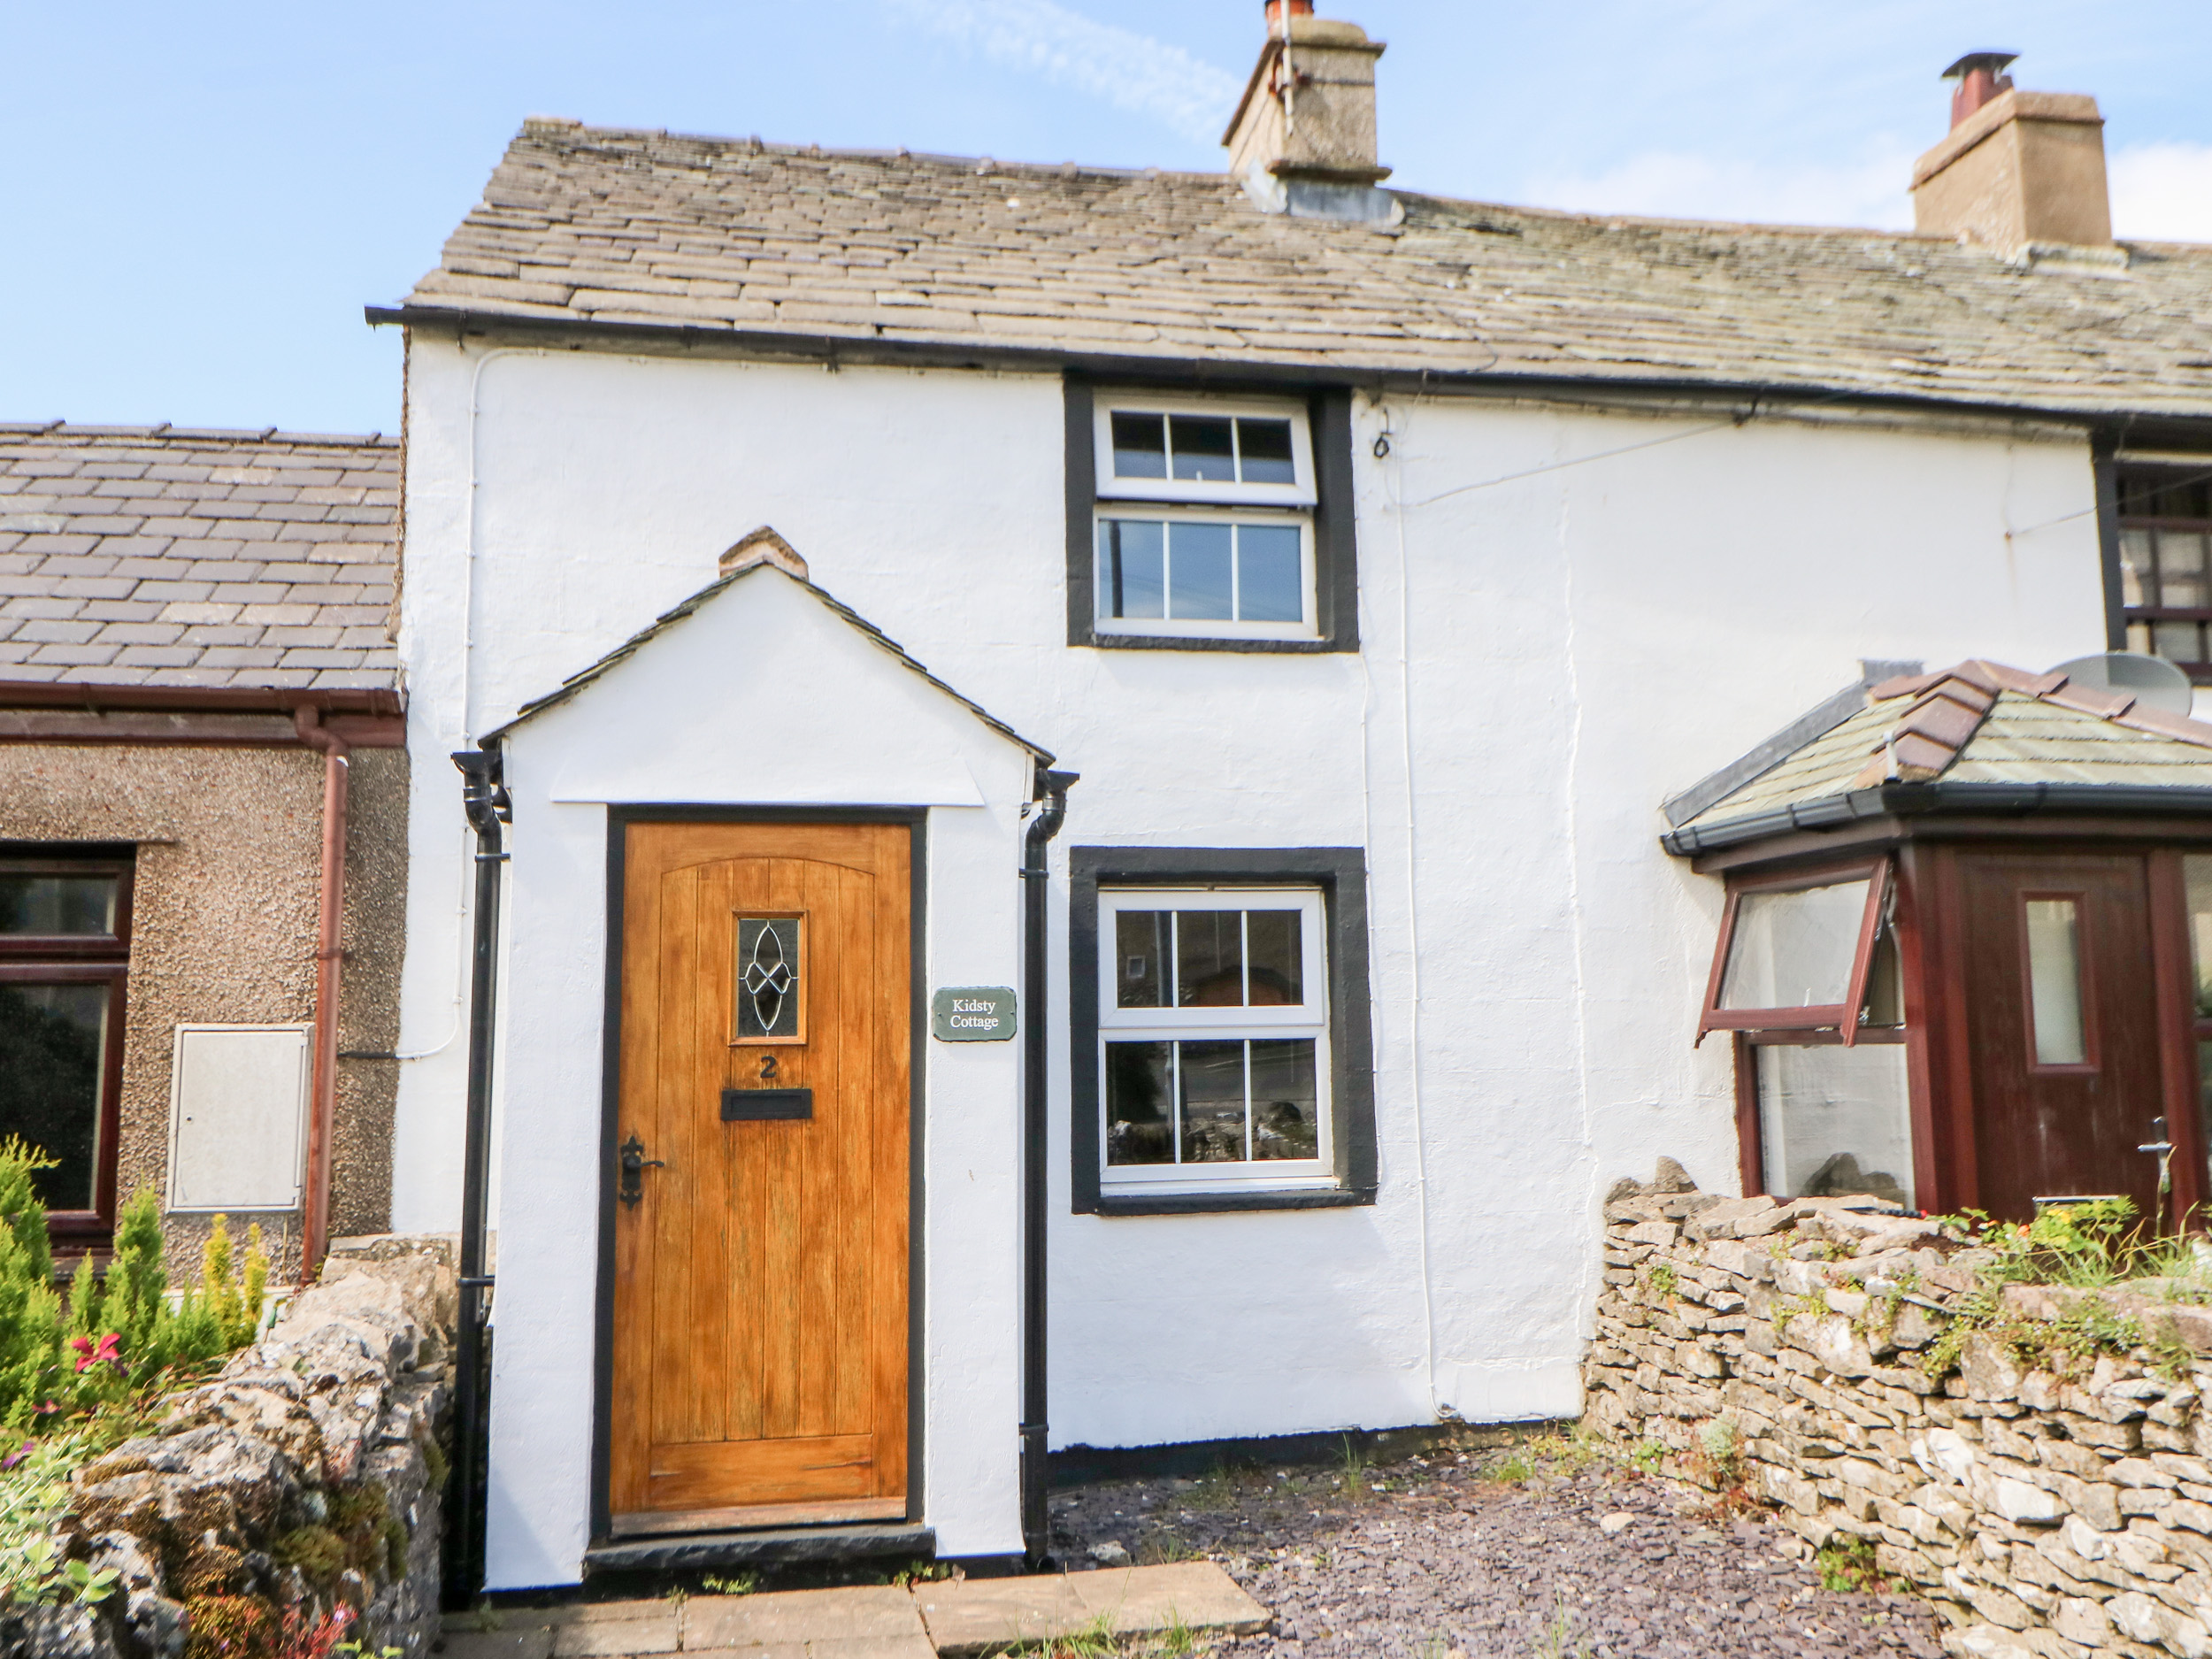 Kidsty Cottage, The Lake District and Cumbria